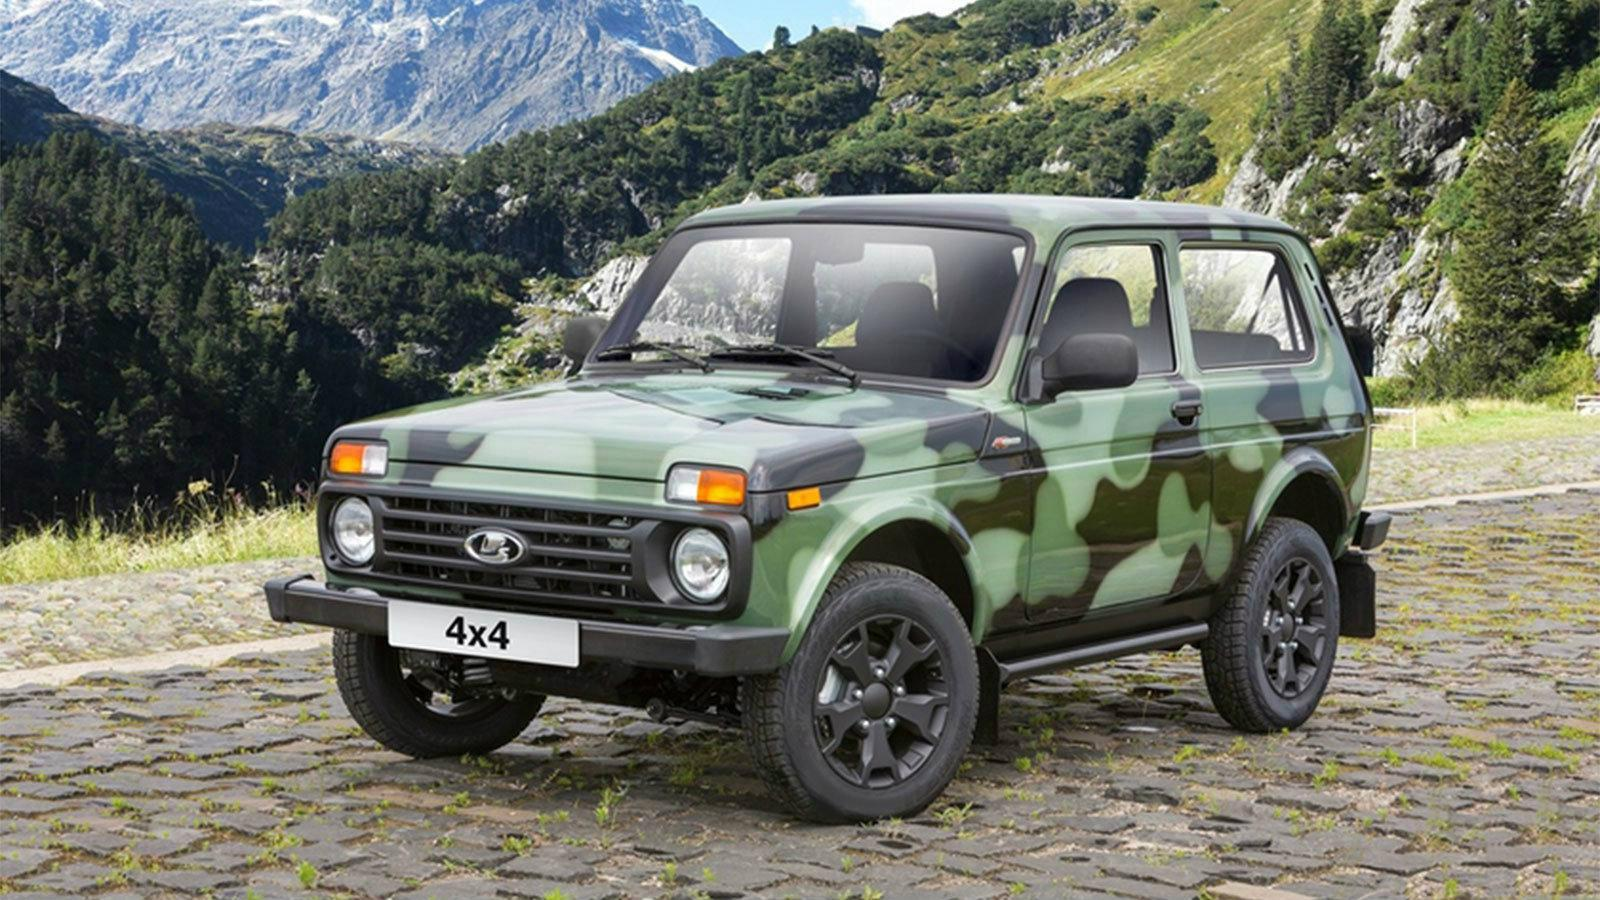 camouflage lada niva lada lada niva 4x4. Black Bedroom Furniture Sets. Home Design Ideas